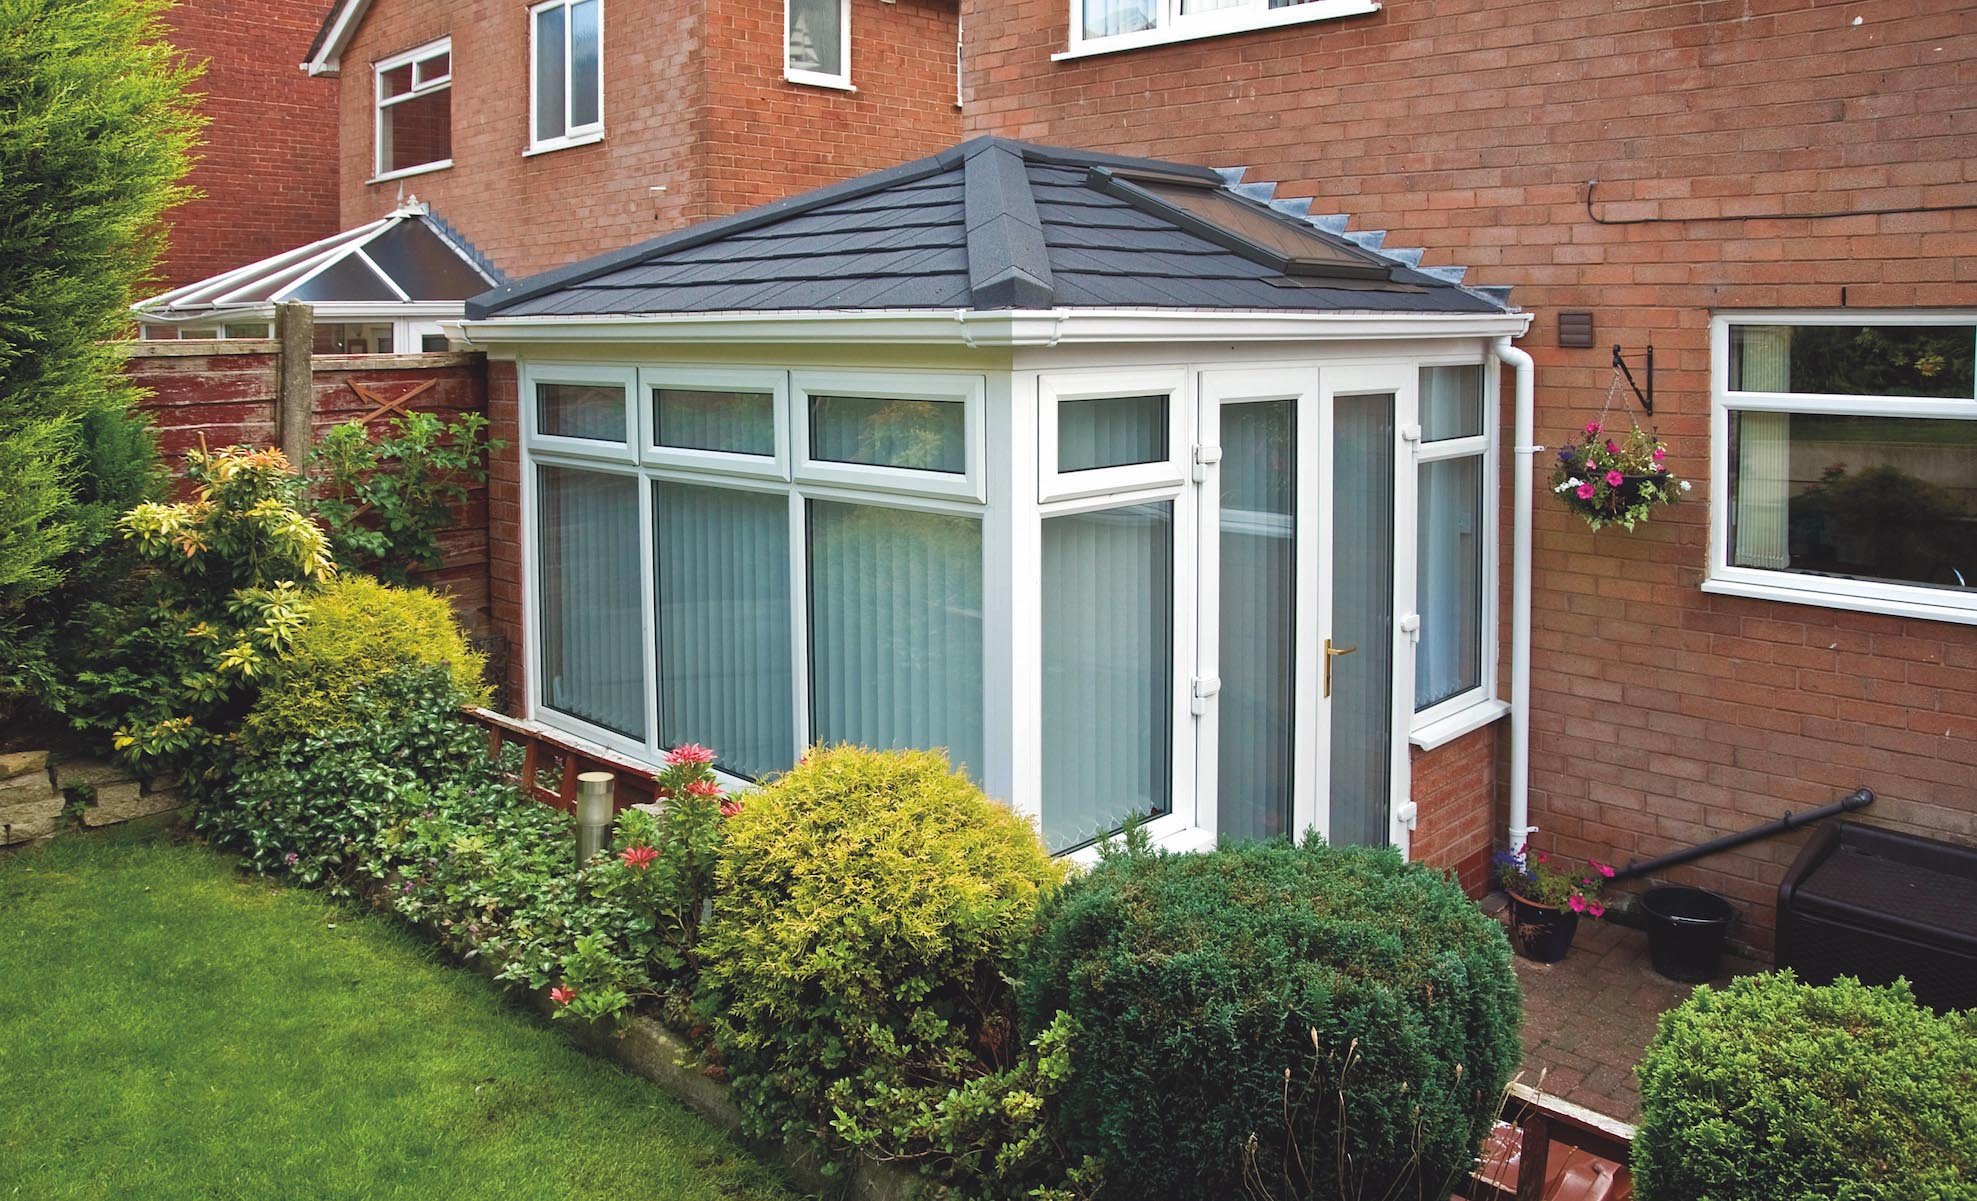 Conservatory refurbished with a Metrotile Lightweight Roof System Shingle Charcoal and Velux Window